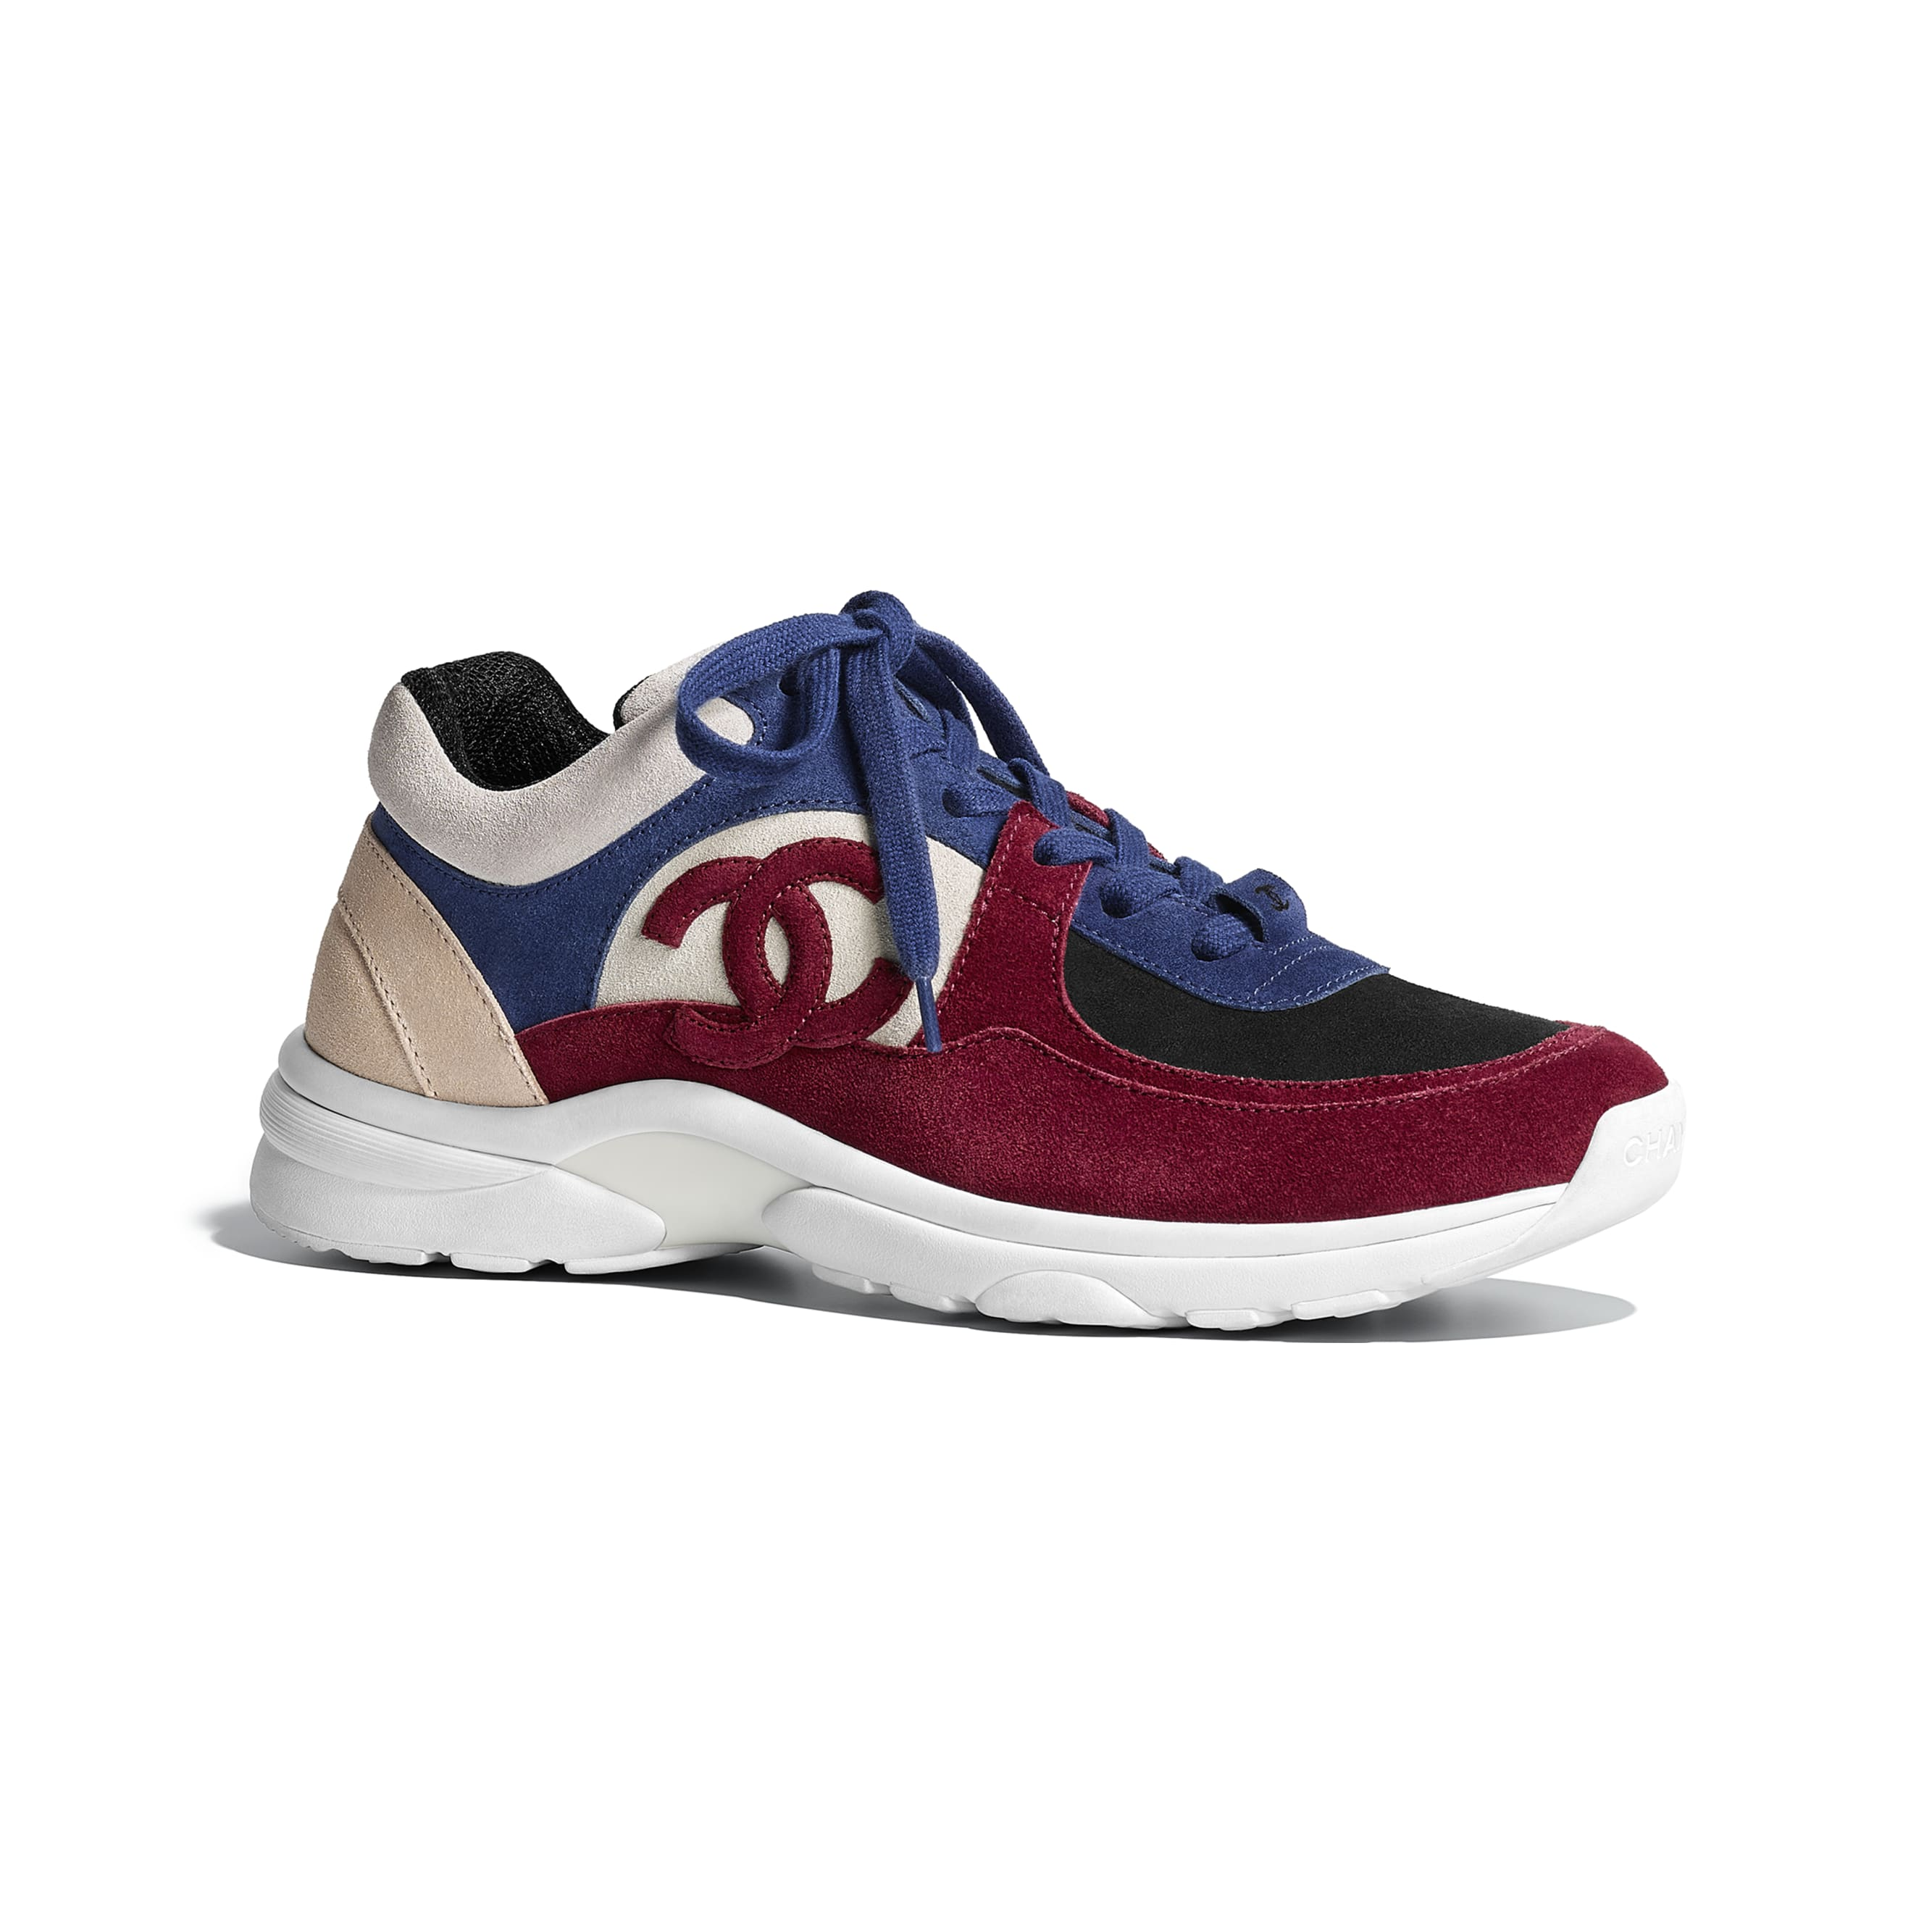 Sneakers - Navy Blue & Red - Suede Calfskin - Default view - see standard sized version